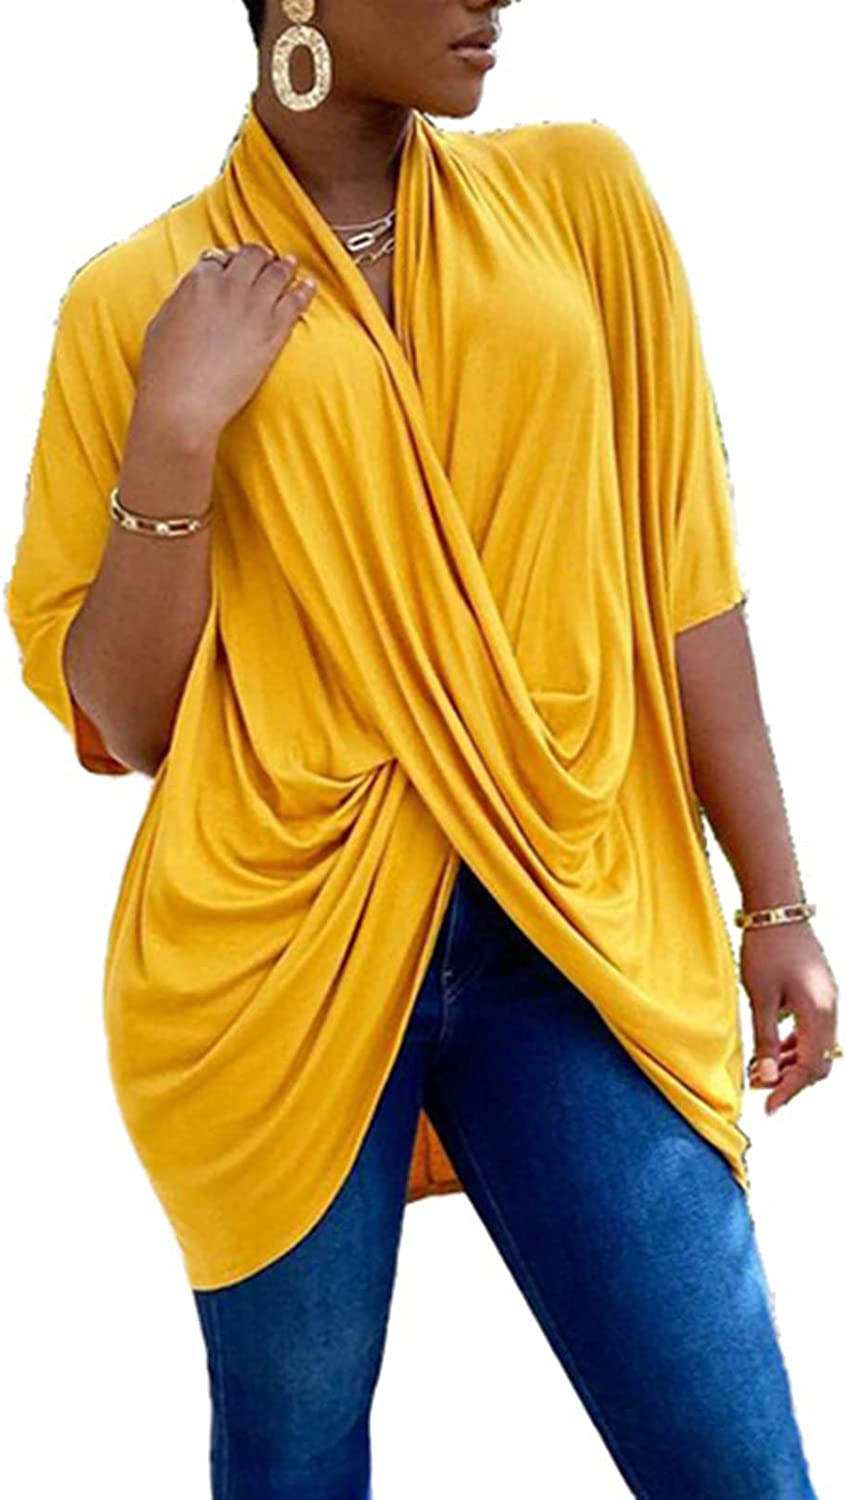 Women Wear to Work Top - Short Sleeves Wrap Front Solid Color Draped Shirt Blouse